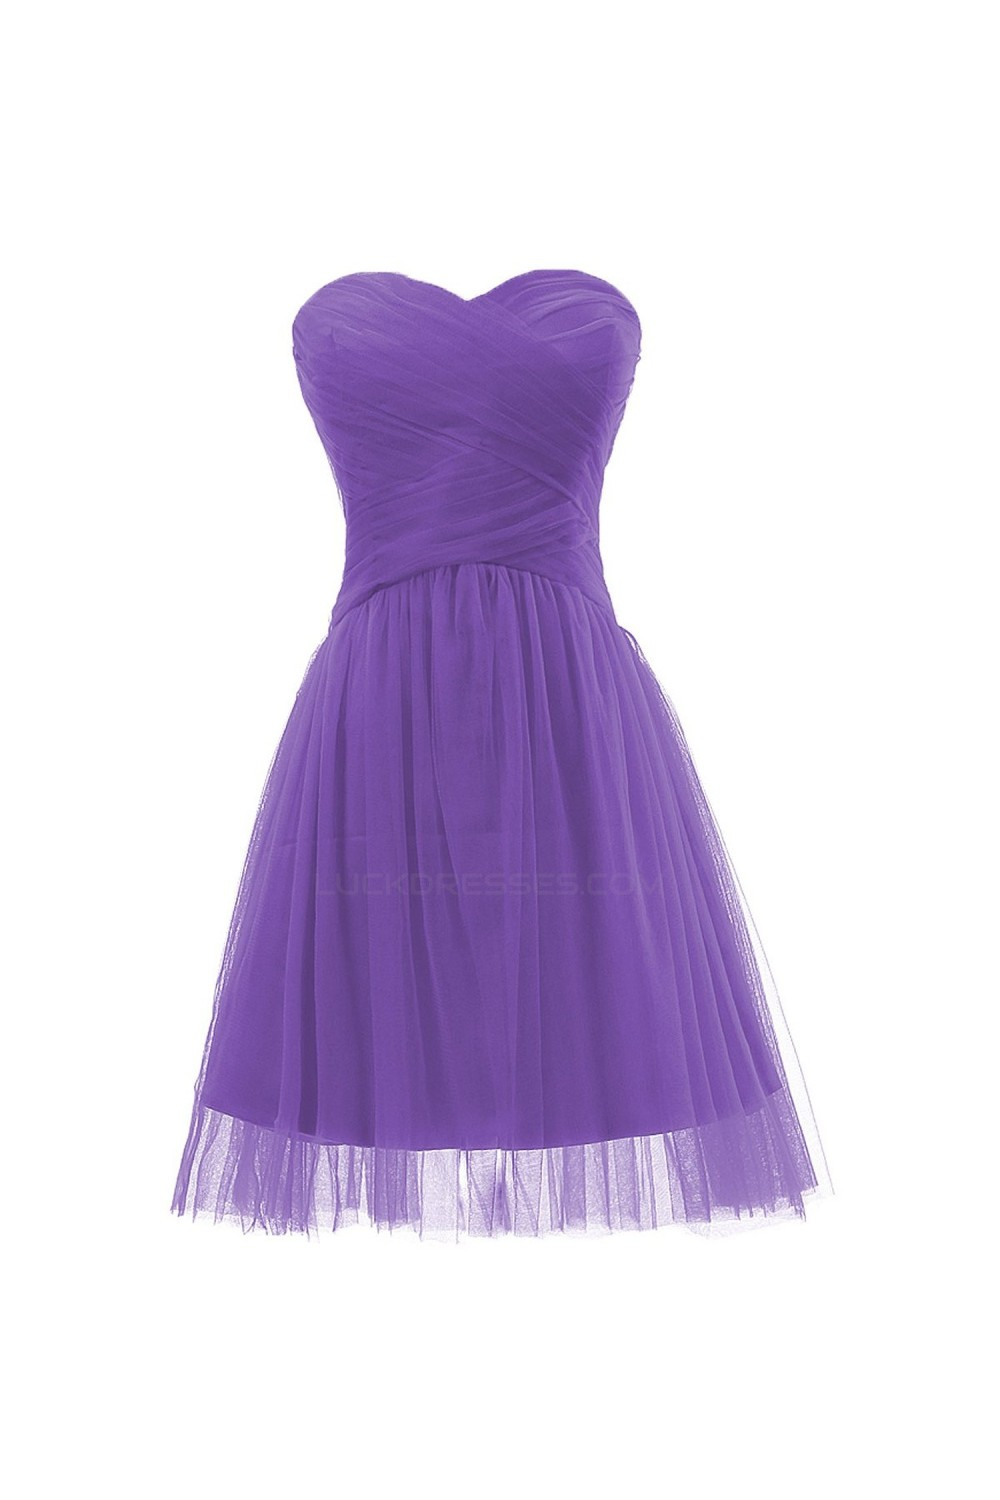 A Line Sweetheart Short Purple Tulle Bridesmaid Dresses